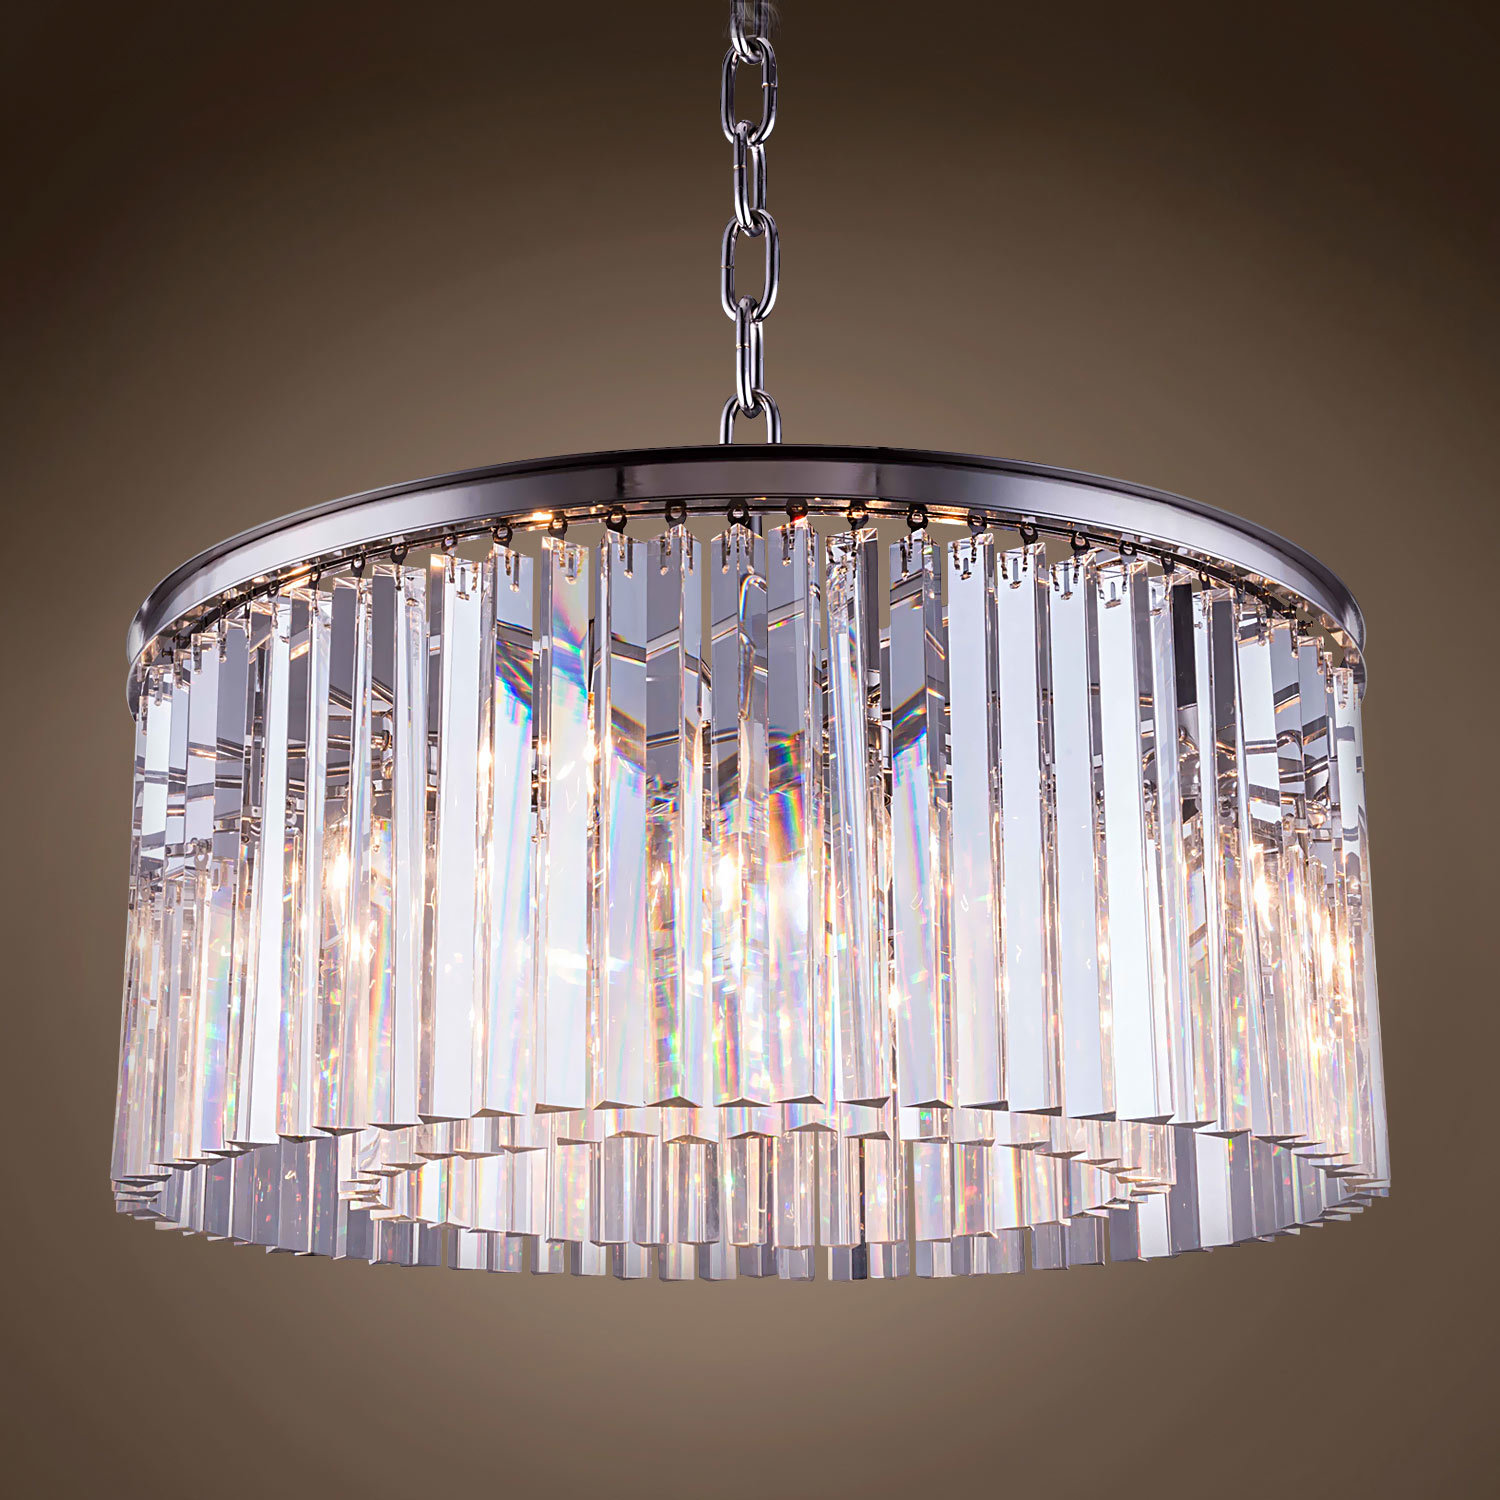 antique for at prism piece per swedish price chandelier pamono sale